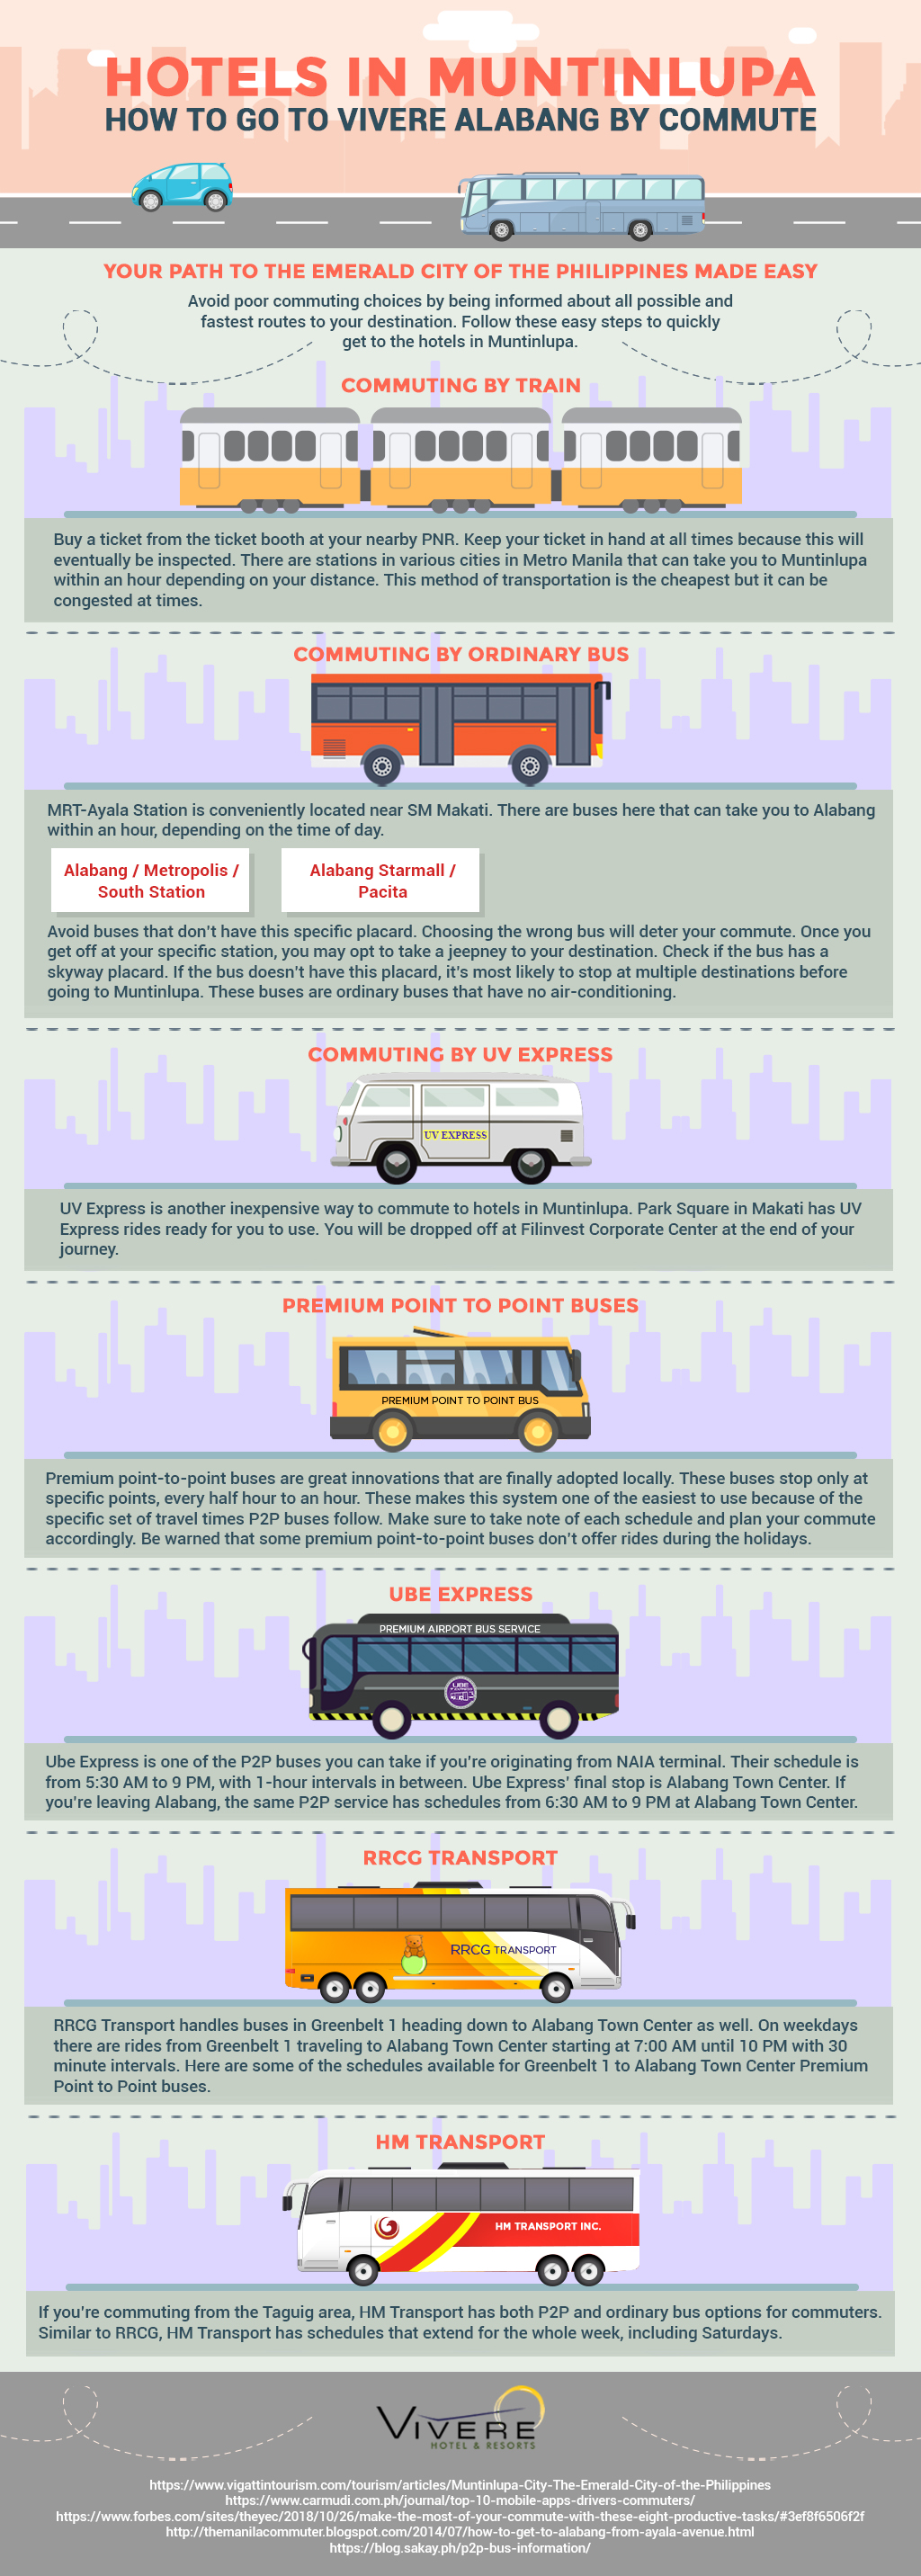 Infographics - Hotels in Muntinlupa – How to go to Vivere Alabang by commute